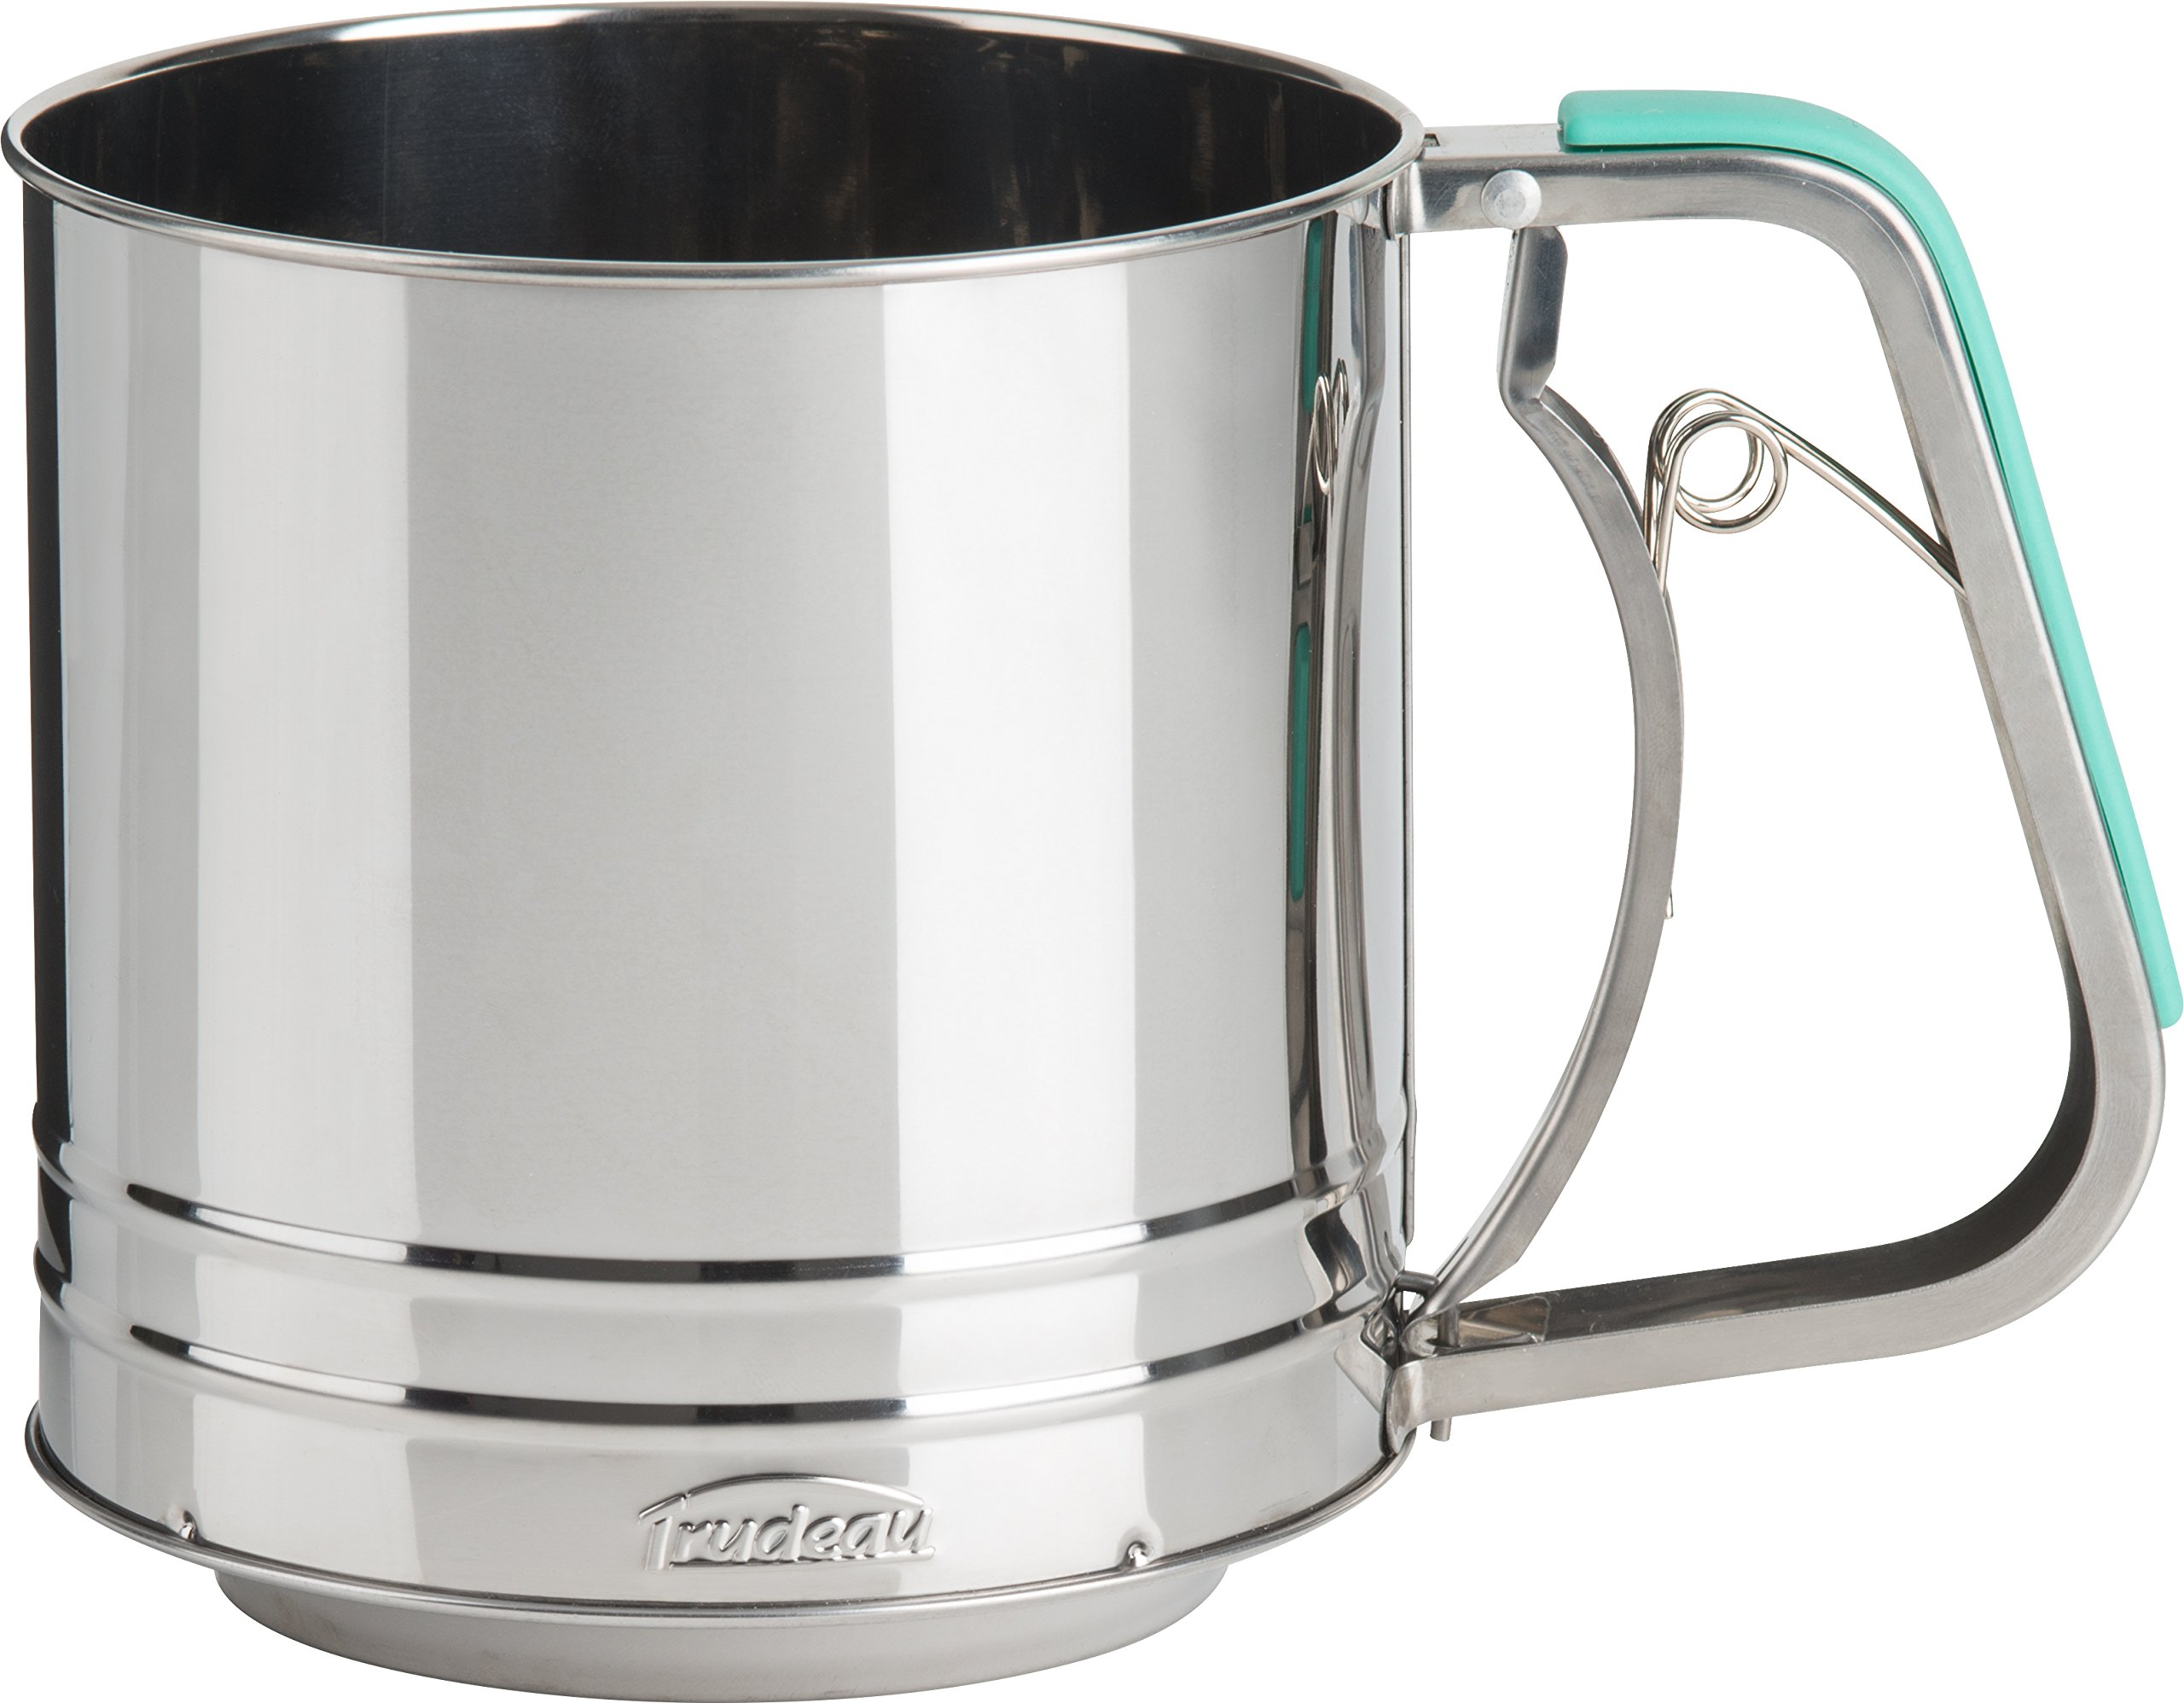 Trudeau 9913078 Flour Sifter Of Stainless Steel, Mint Green